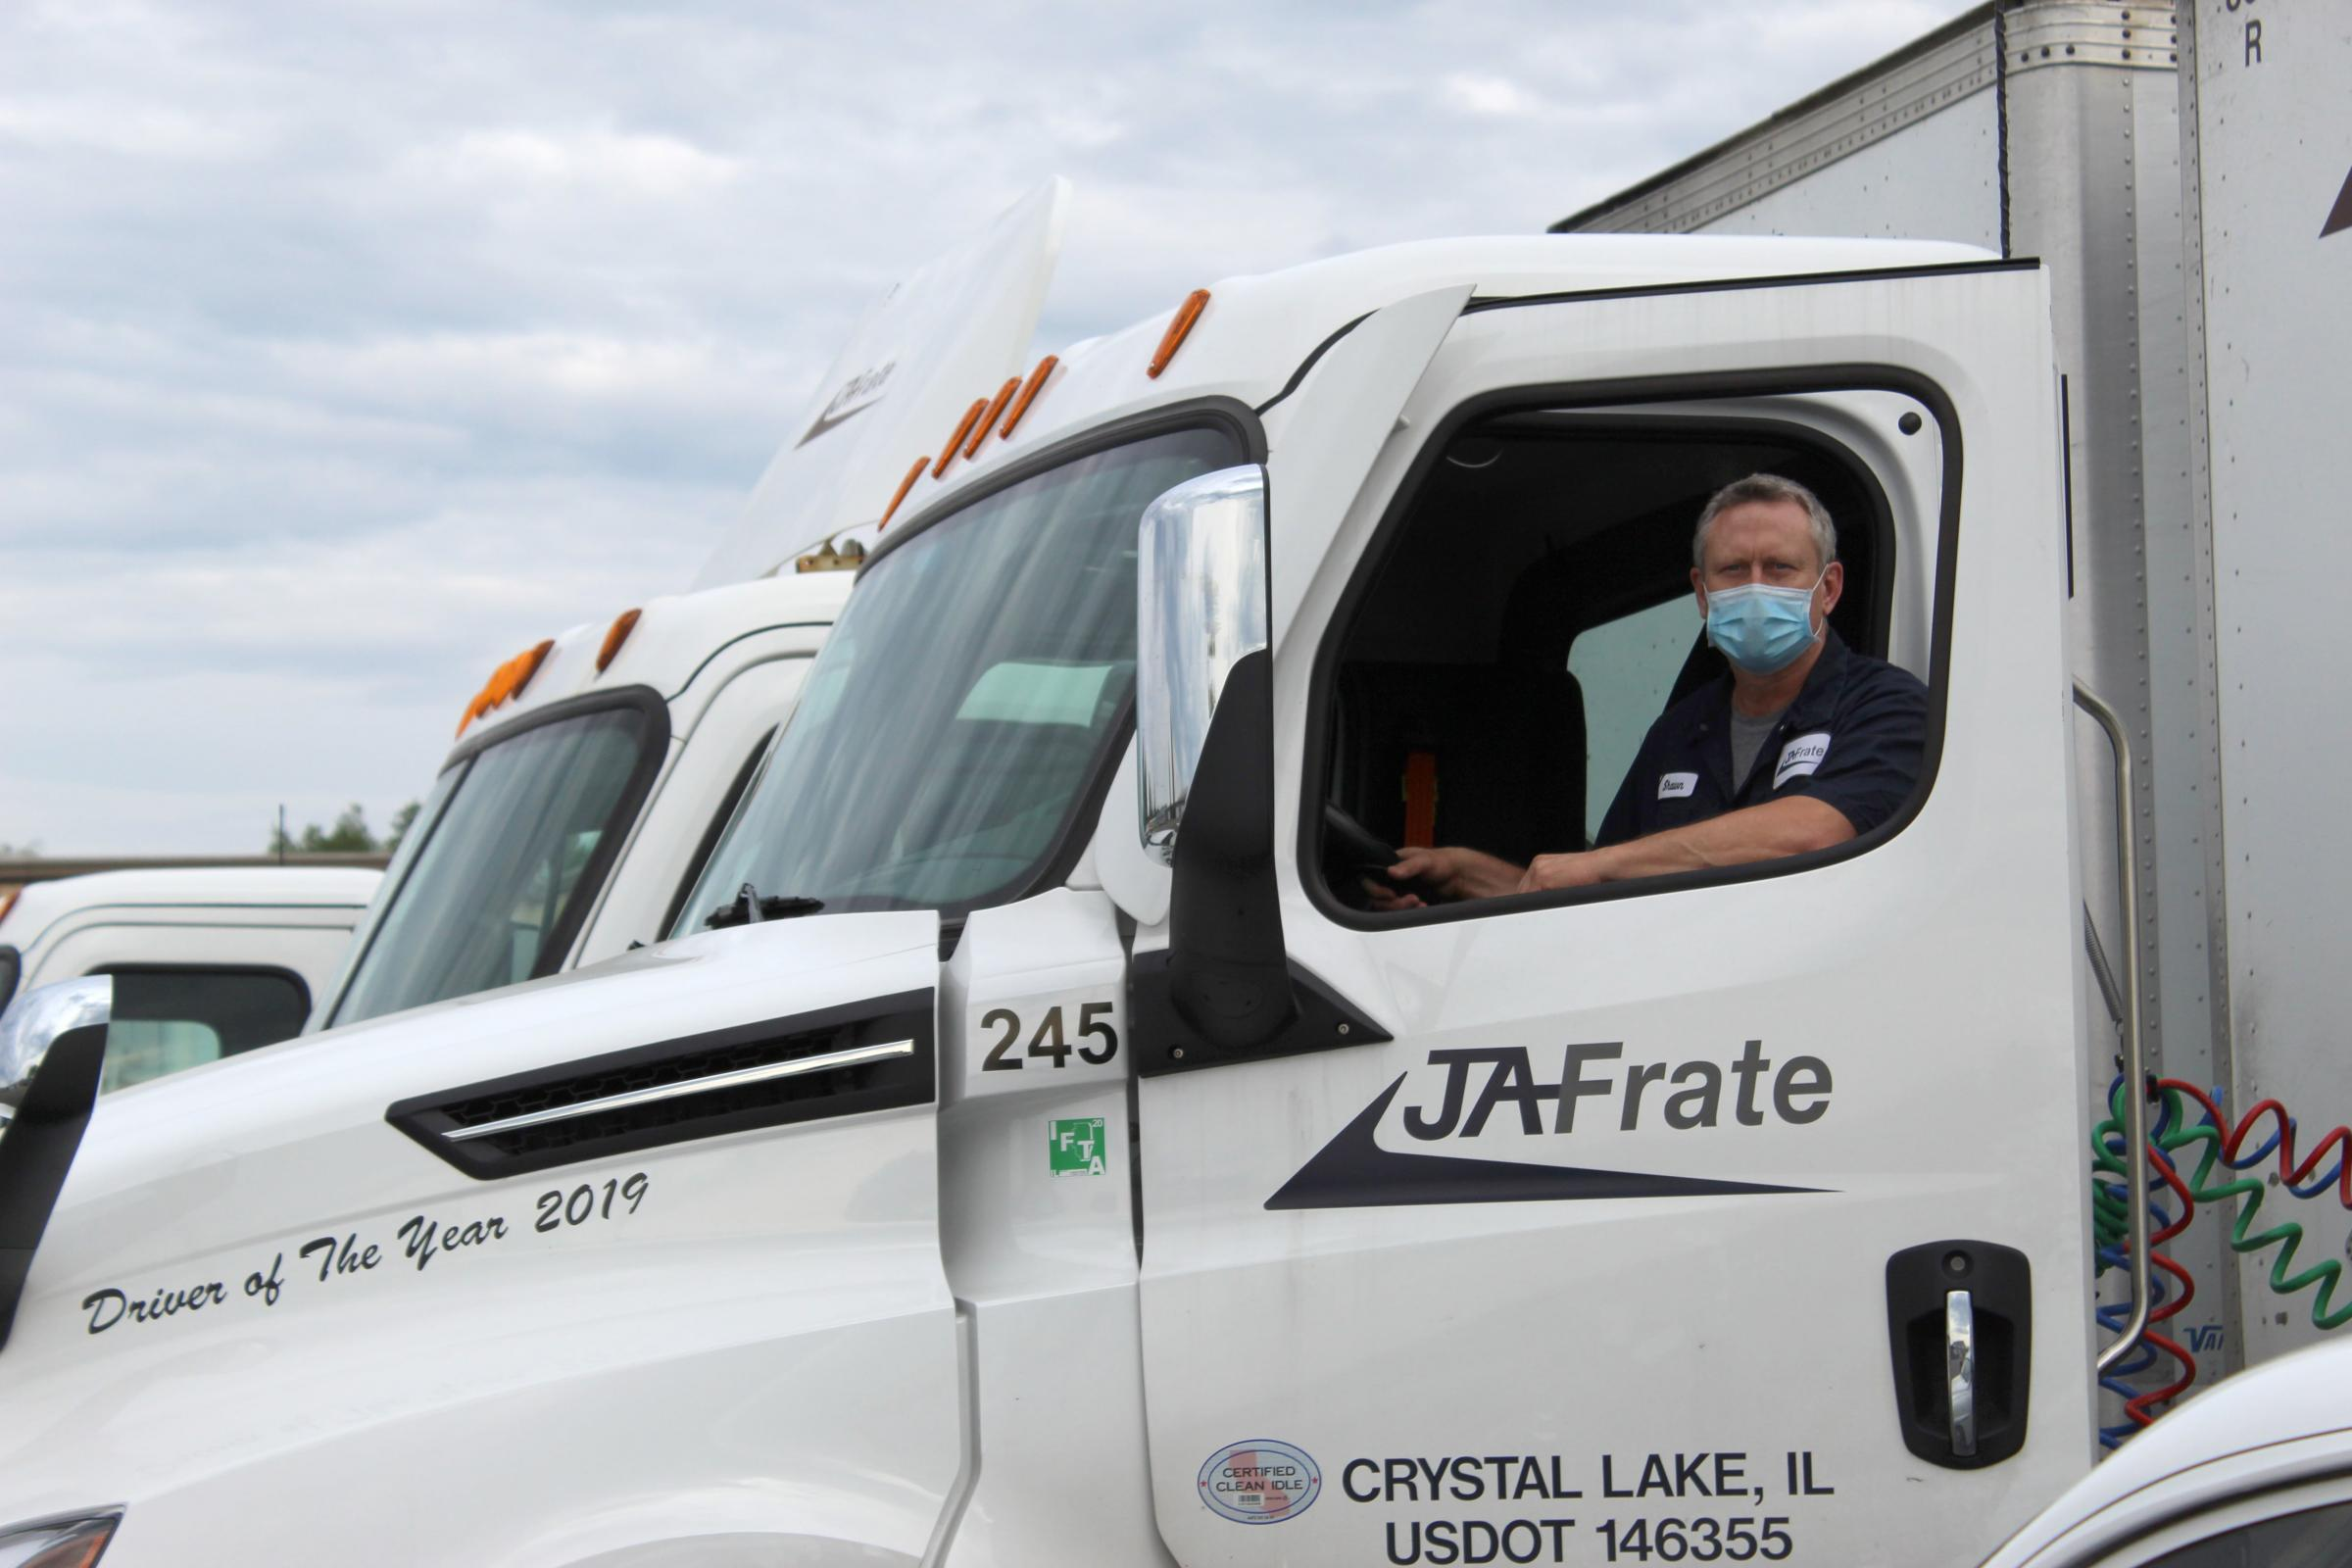 Illinois truck driver at JA Frate wearing a mask in his truck